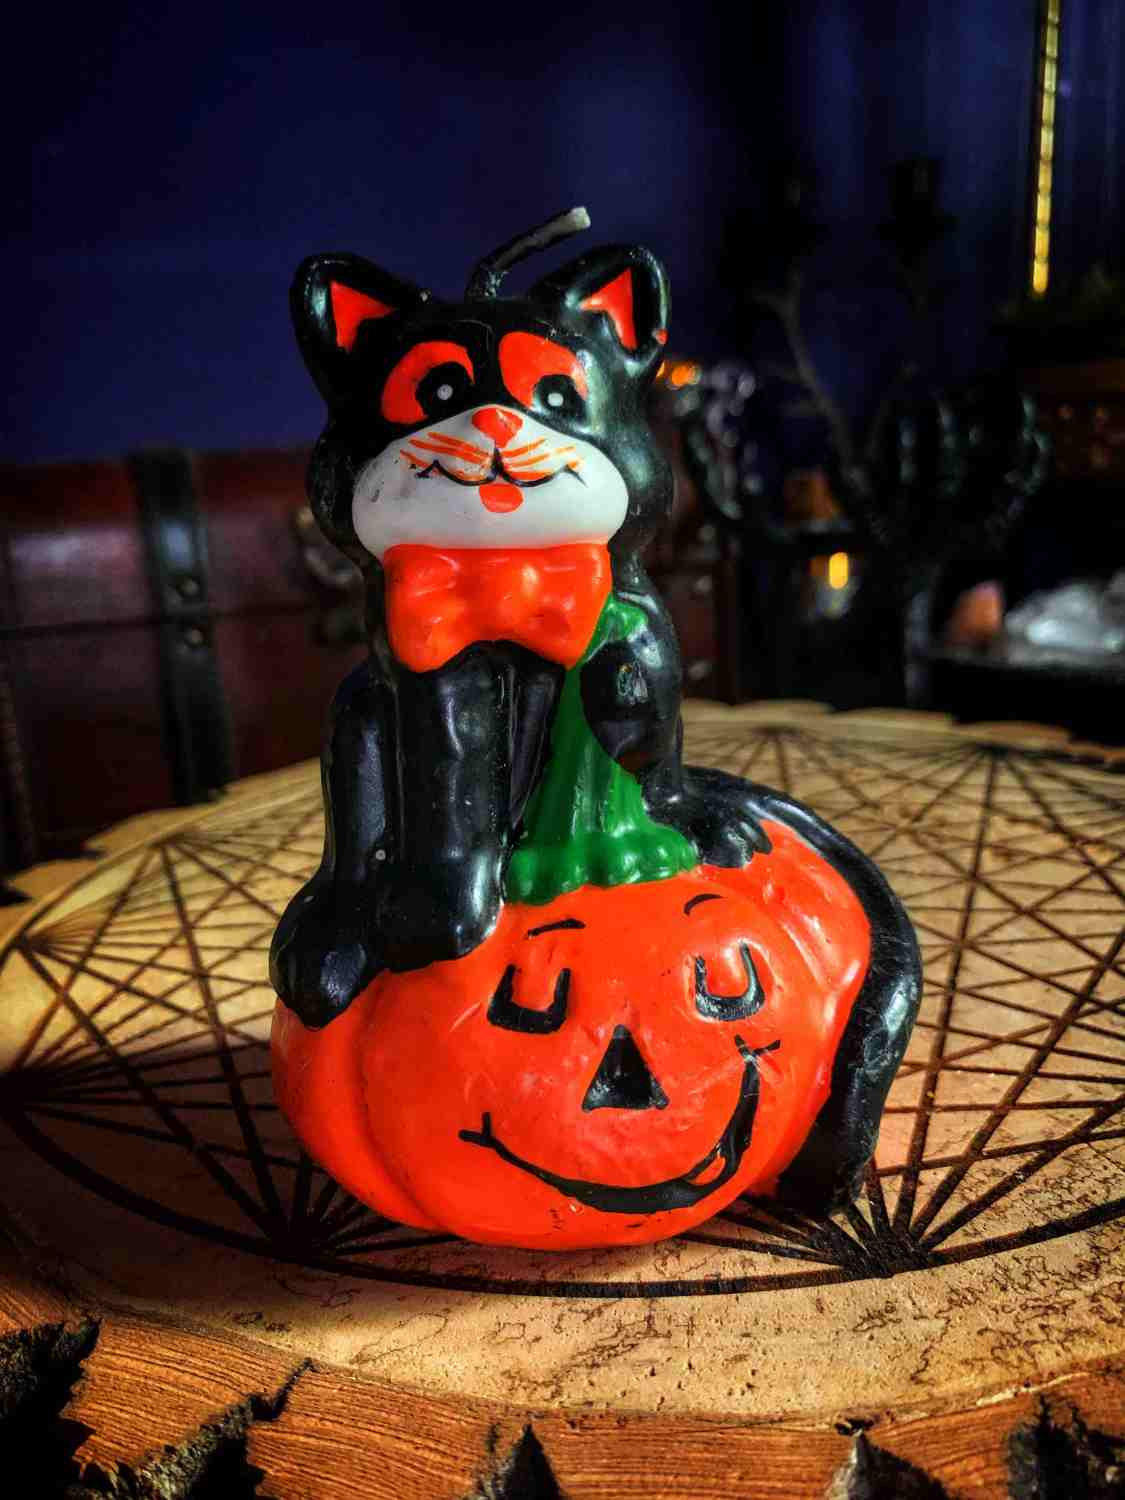 The Cat Pumpkin Candle Vintage